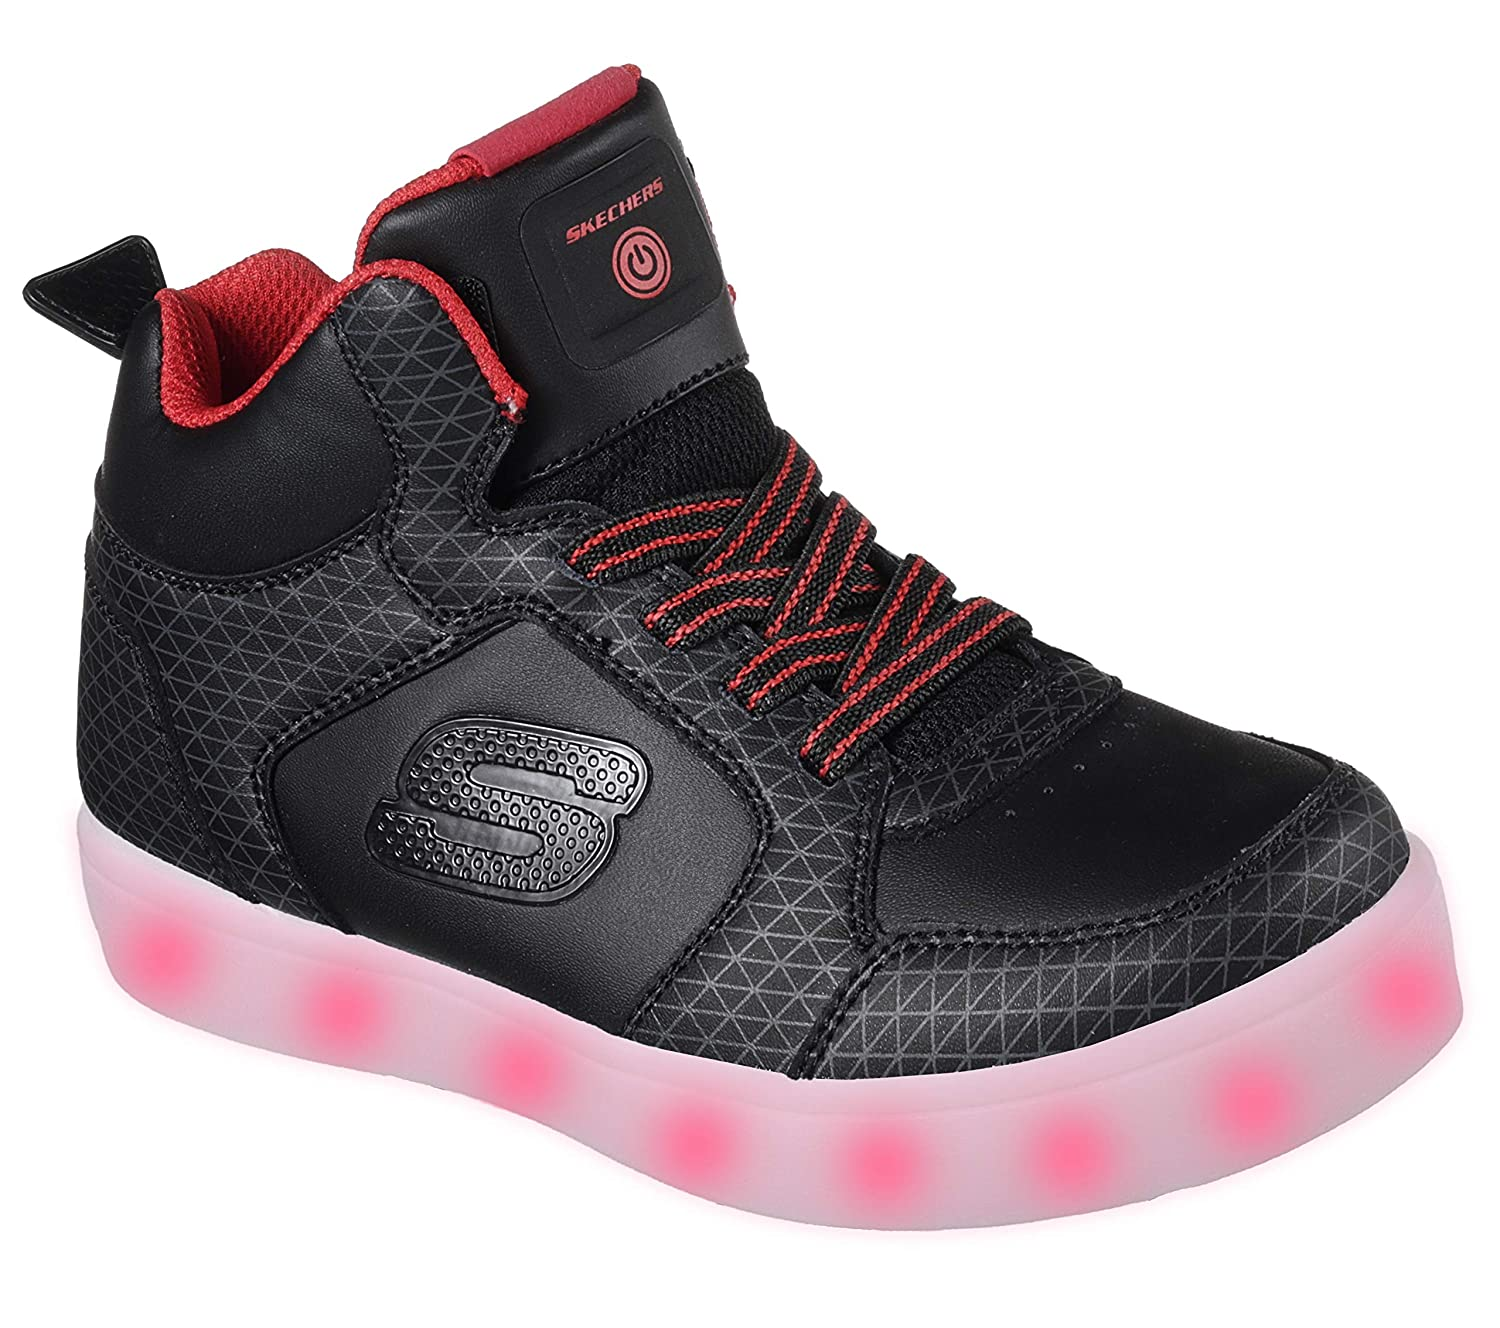 Skechers Kids Kids' Energy Lights-Tarvos Slip-on,, ENERGY LIGHTS- TARVOS - K